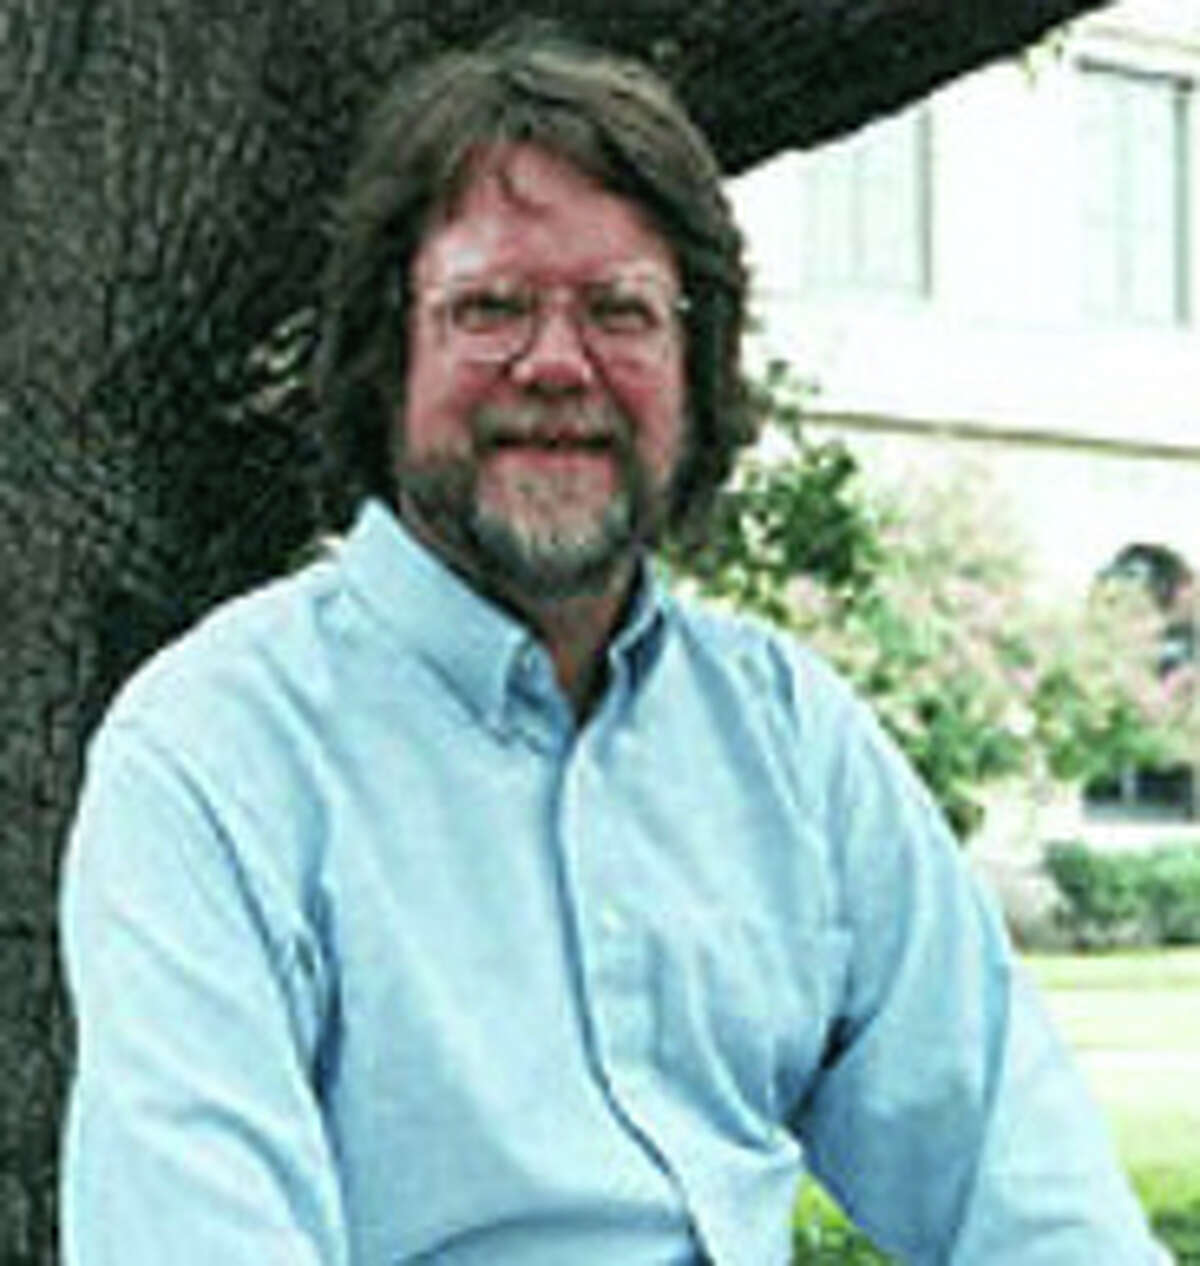 The charges, filed in Houston, clear up some of the mystery surrounding why James Arnt Aune, 59, who chaired the A&M's Department of Communication, committed suicide on Jan. 8.